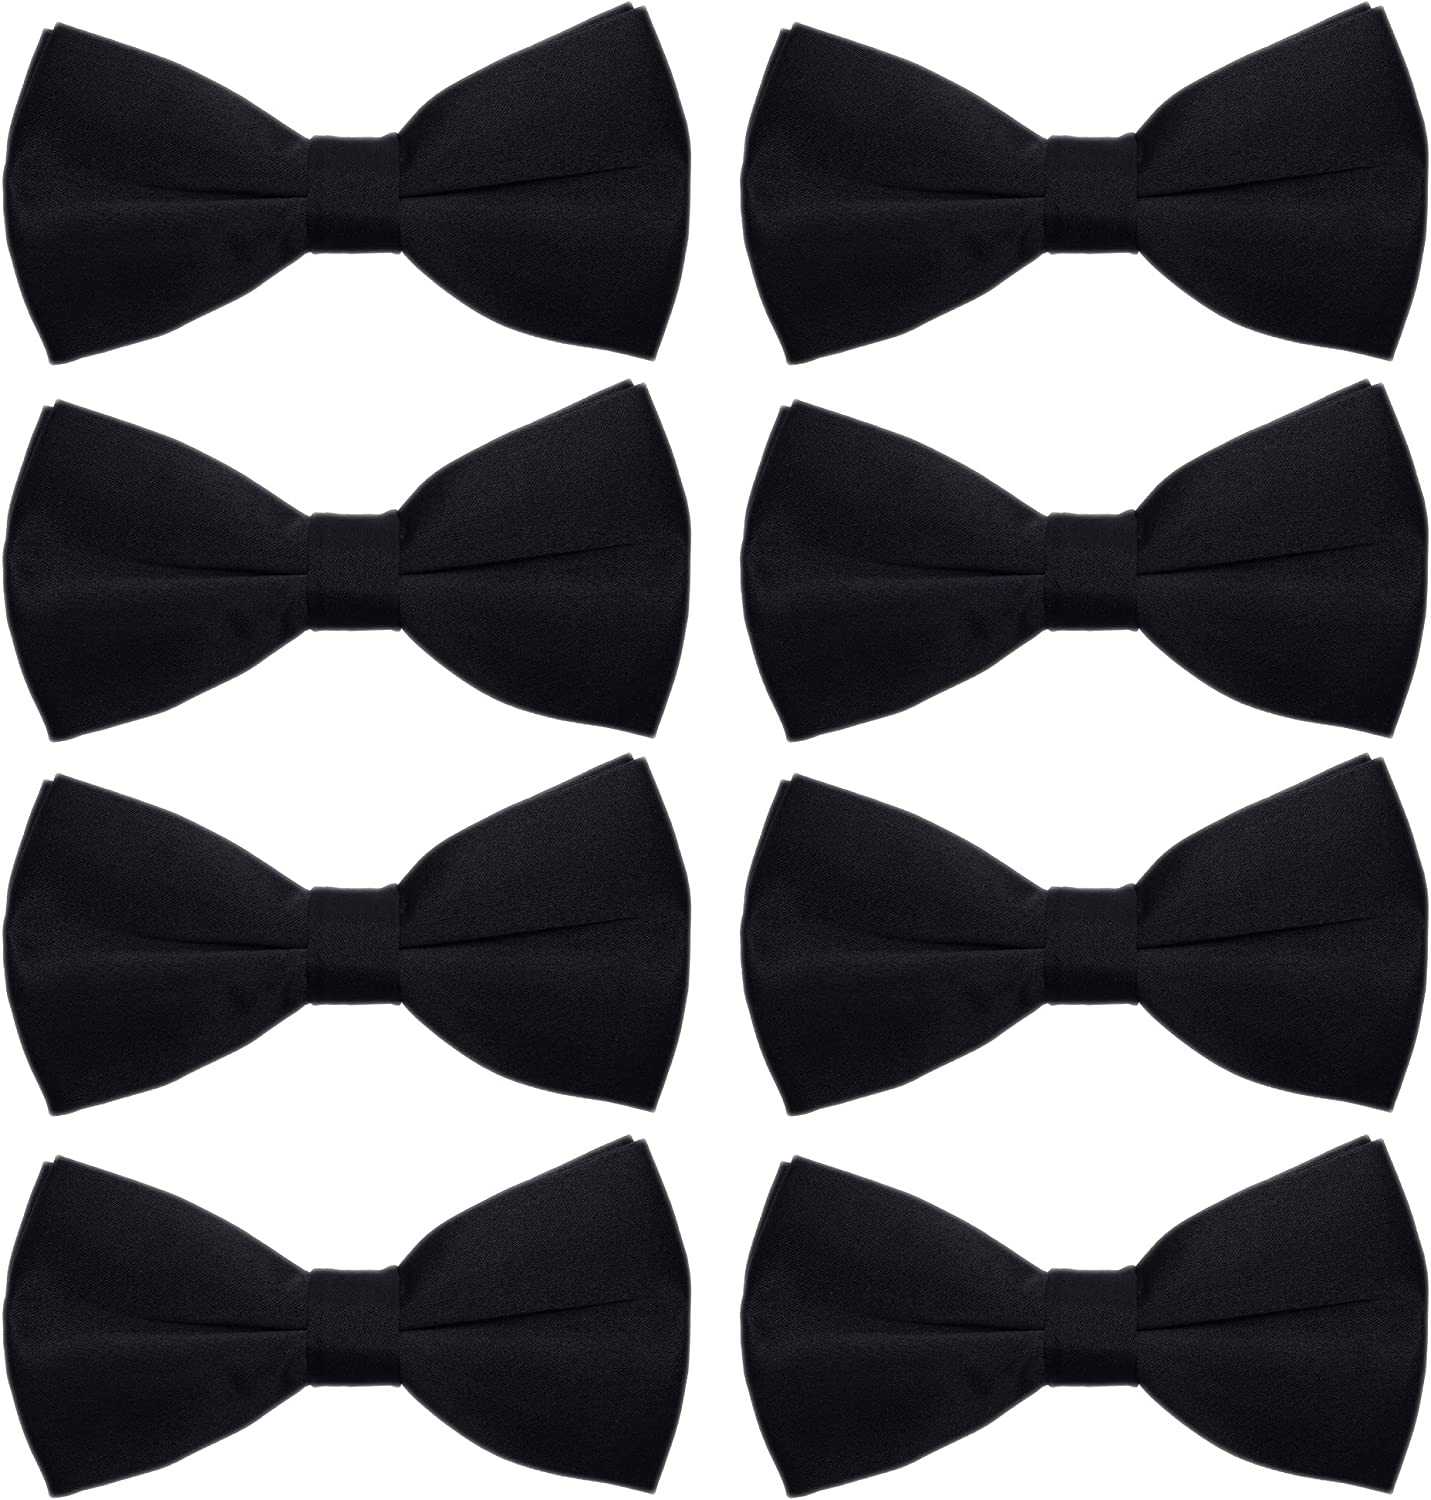 New Satin Formal Boys Tuxedo Bowtie Suit Bow Tie Many Colors Wedding Party USA